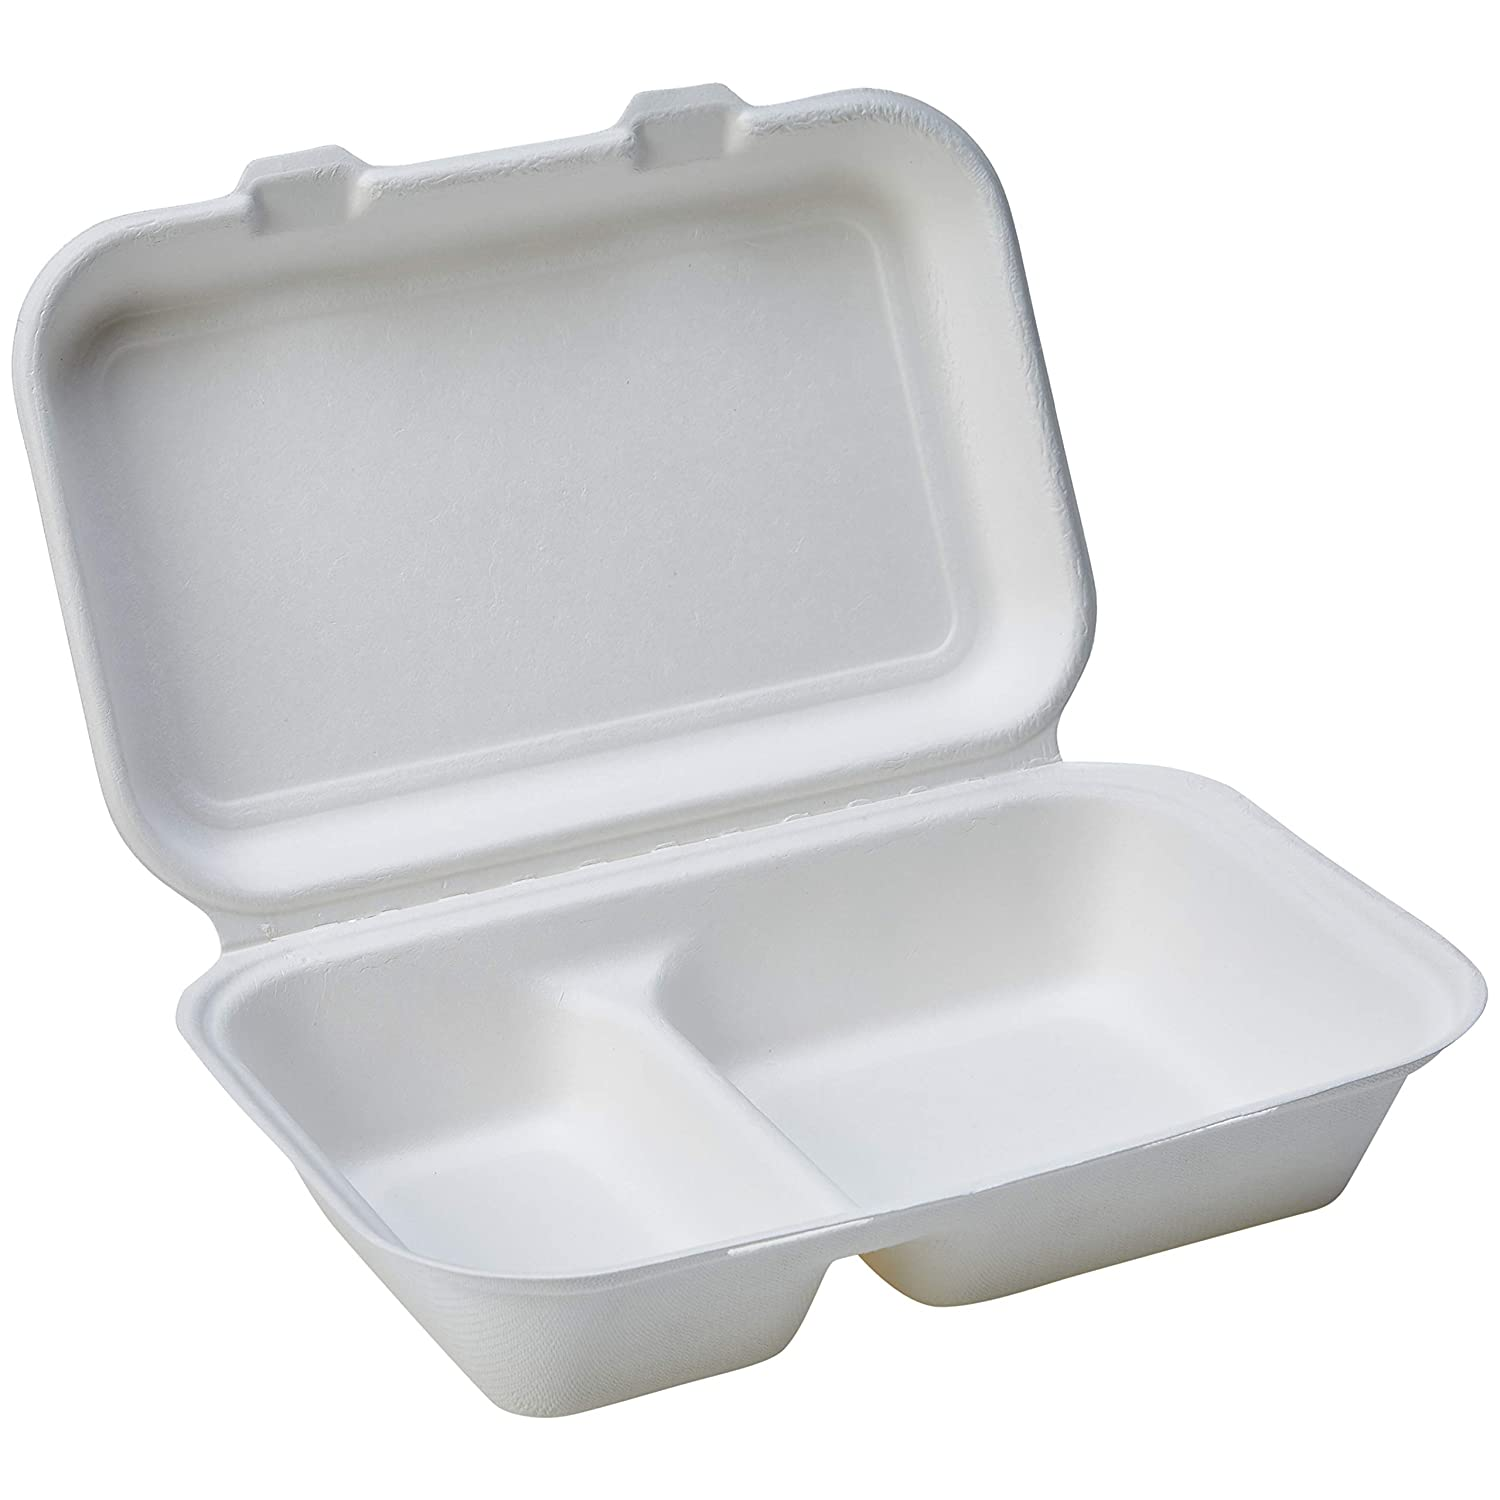 """AmazonBasics Compostable 2-Compartment Clamshell Hinged Food Container, 9"""" x 6"""" x 3"""", Pack of 125"""